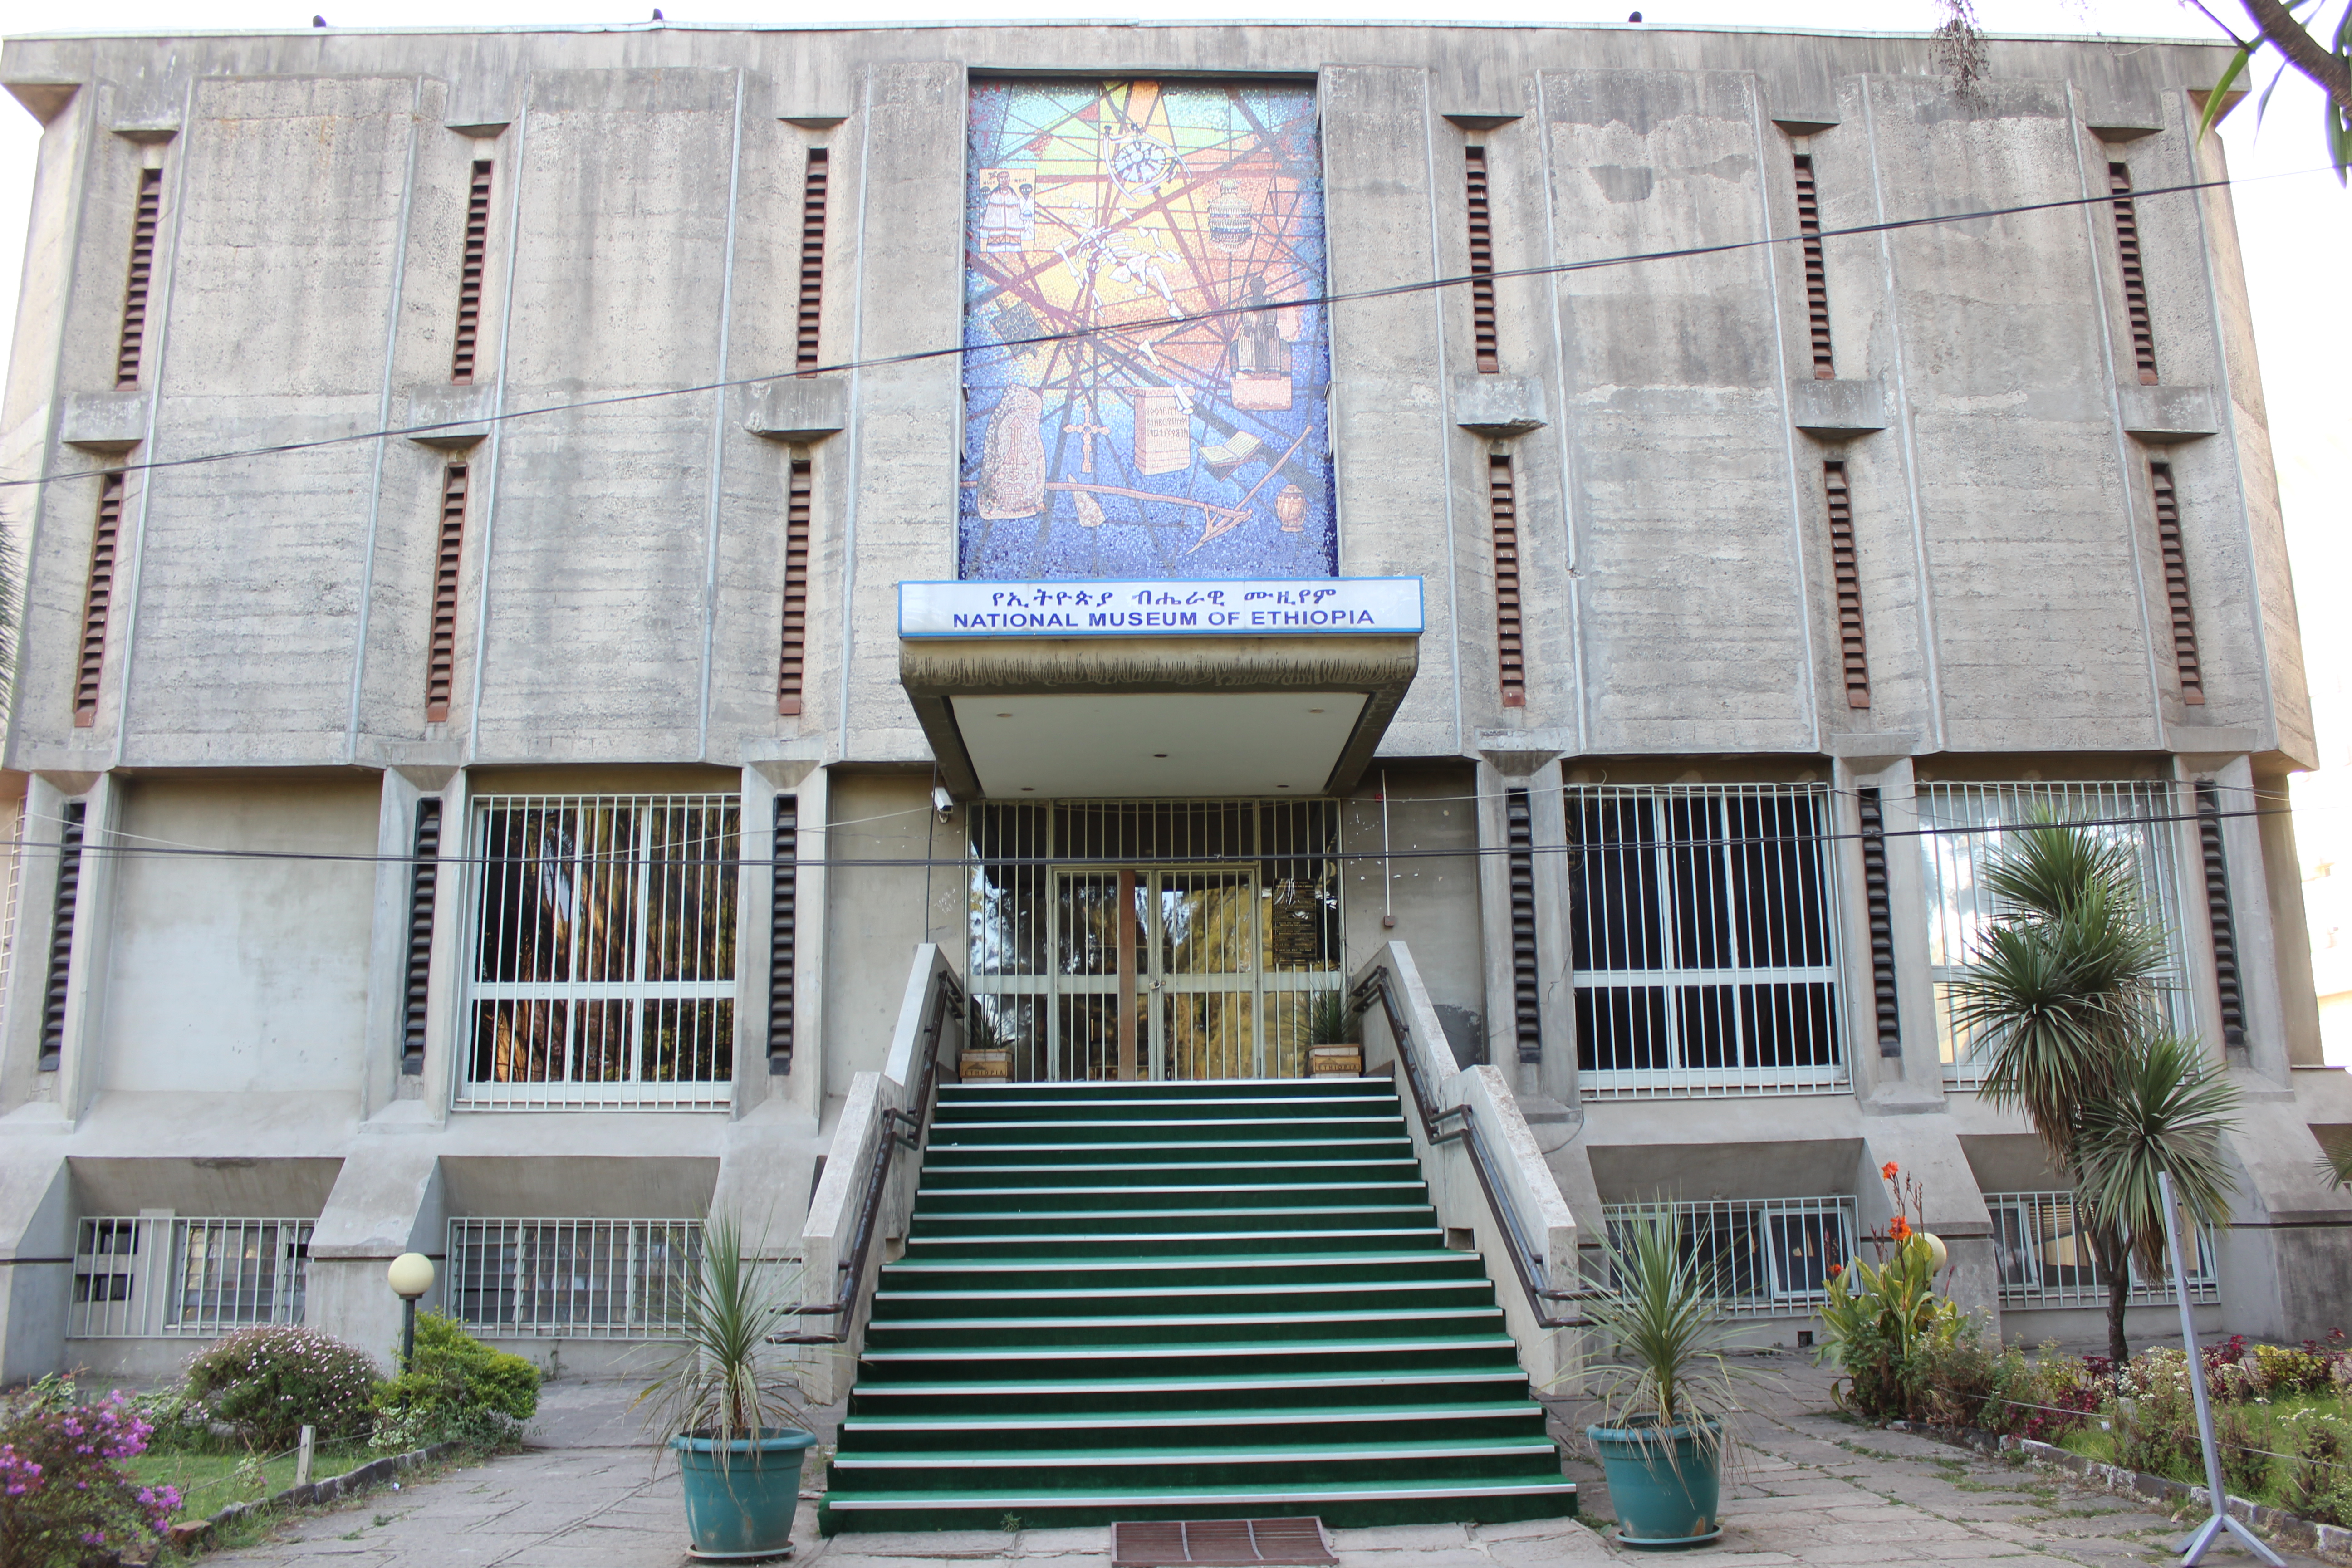 Addis Ababa Museum Addis Ababa, Ethiopian National Museum | The Restless Road